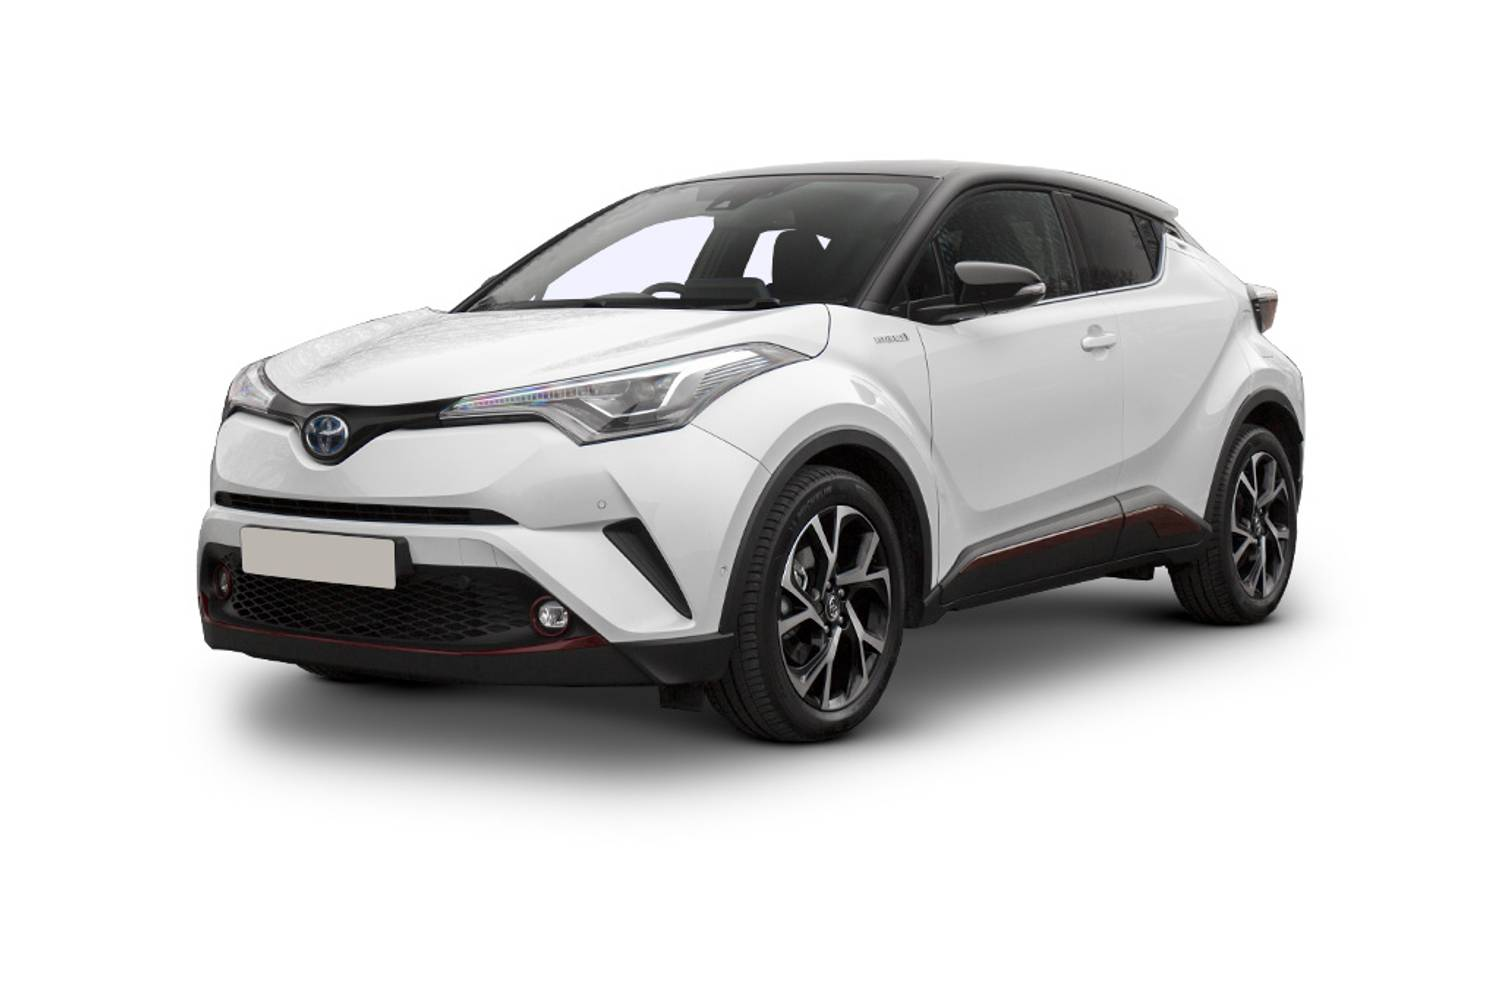 new toyota c hr hatchback 1 8 hybrid excel 5 door cvt. Black Bedroom Furniture Sets. Home Design Ideas